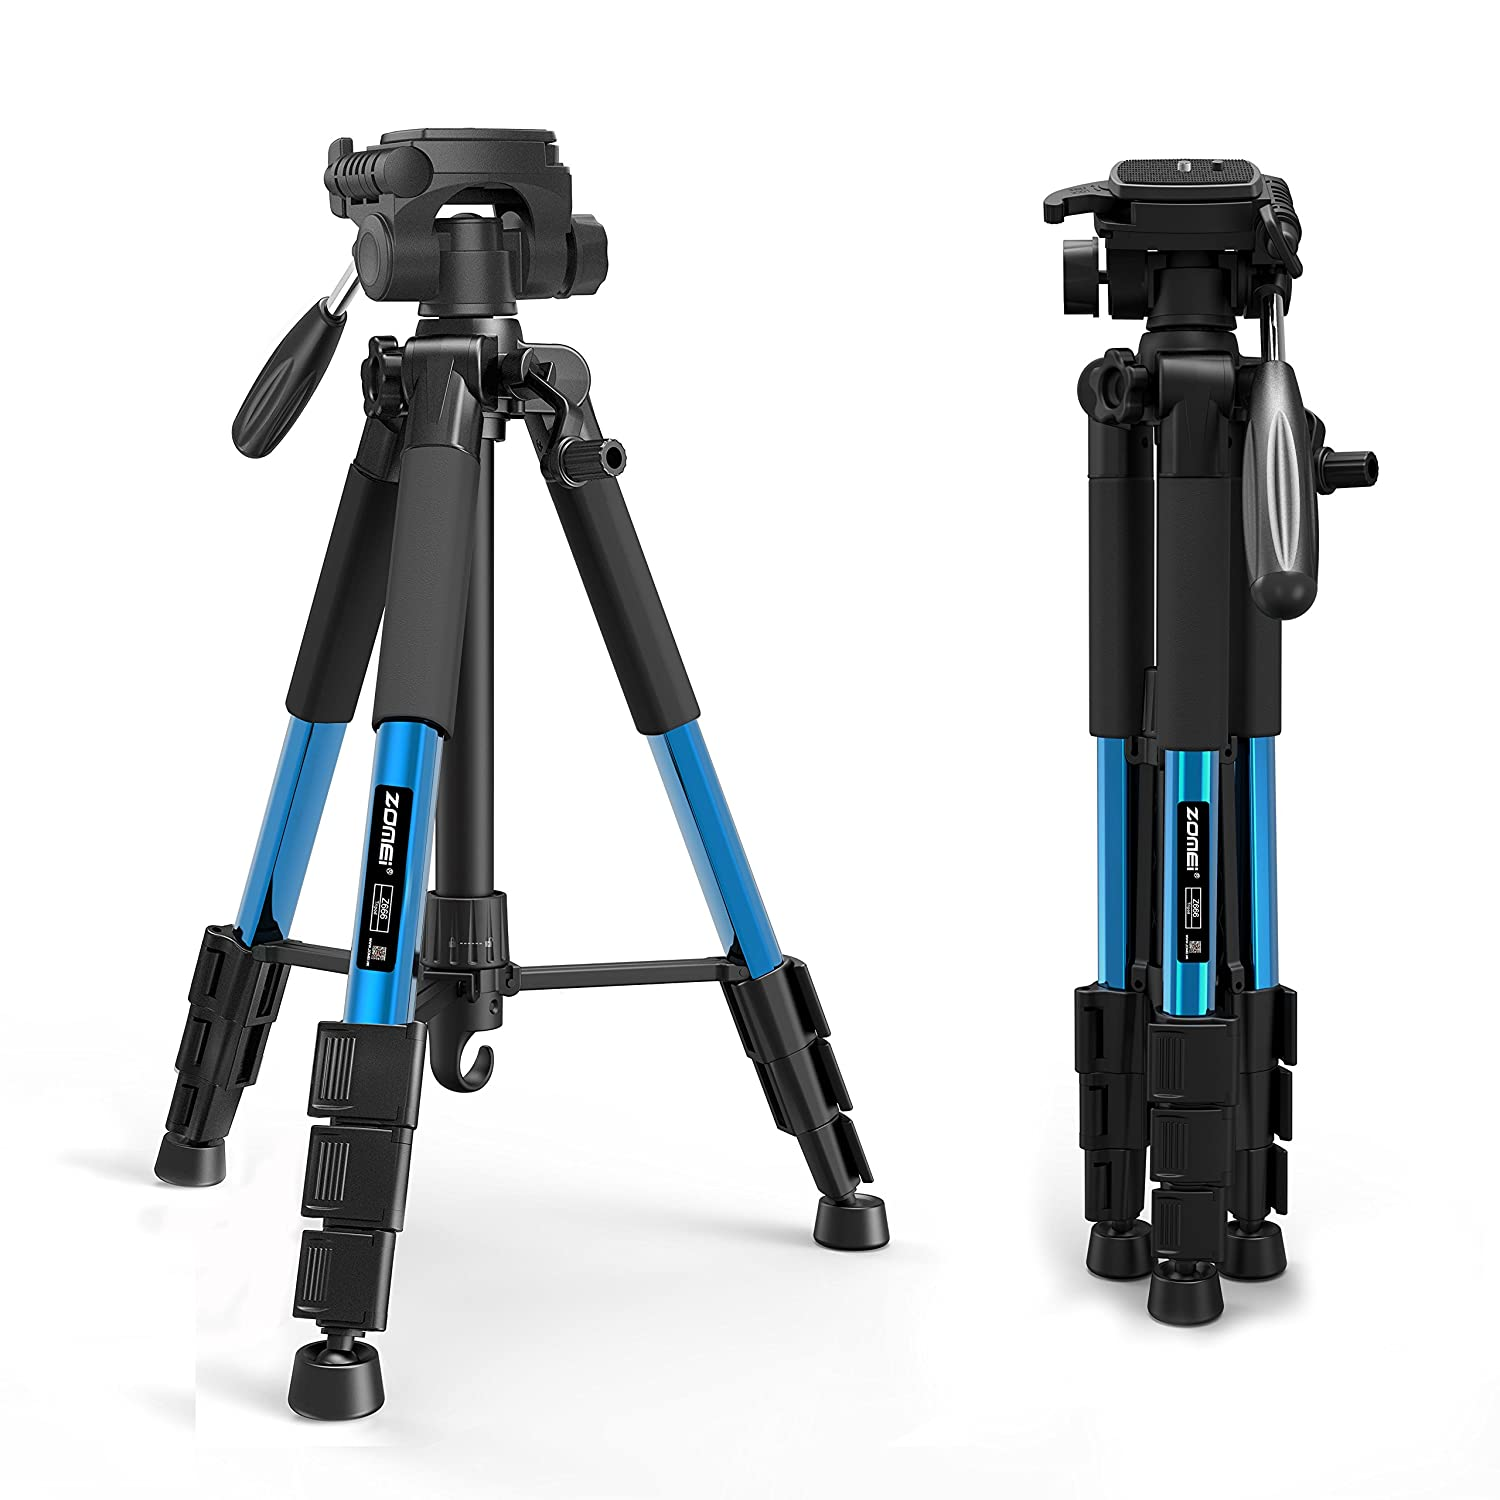 ZoMei 56' Light Weight Aluminum Tripod Flexible Camera Tripod Stand with 1/4' Standard Mount 3-Way Pan Head for DSLR EOS Canon Nikon Sony Samsung with Carry Case